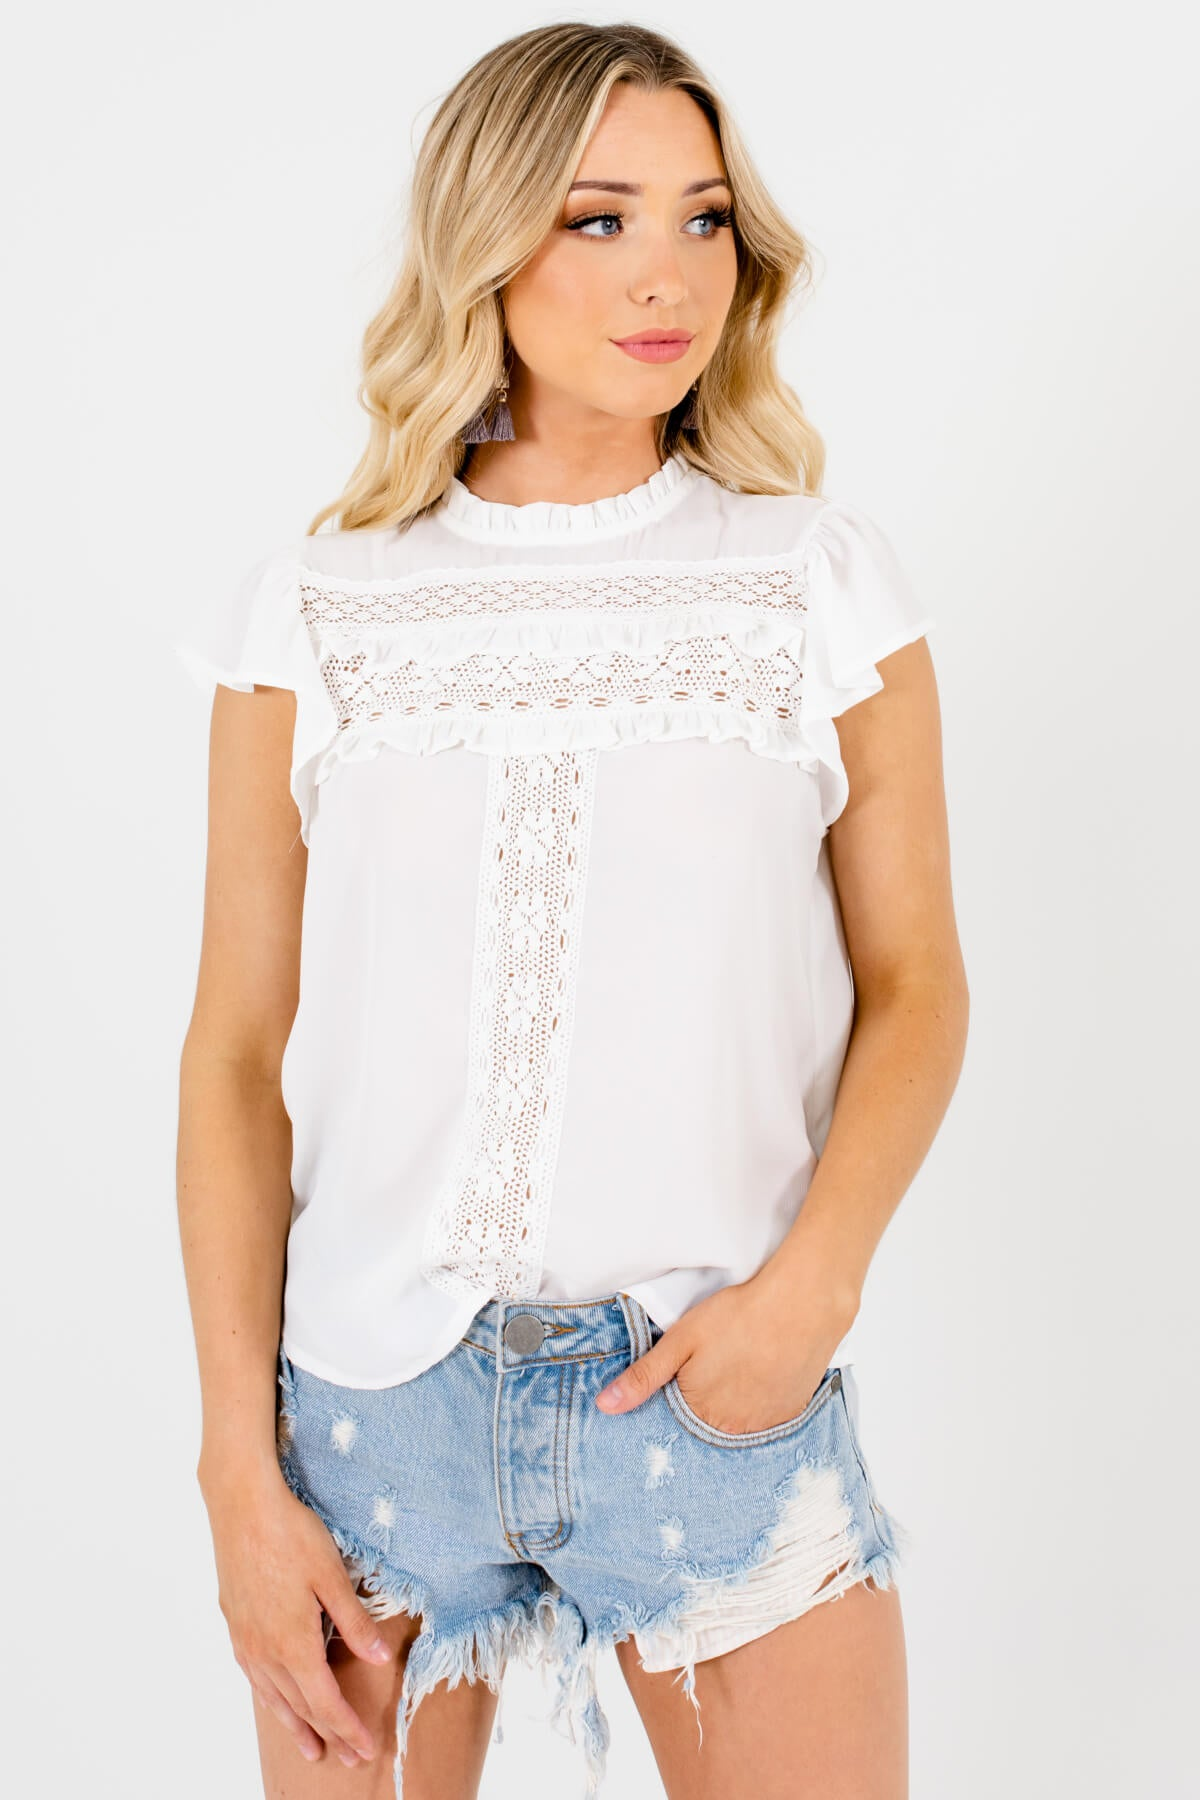 White Ruffle Accented Boutique Blouses for Women